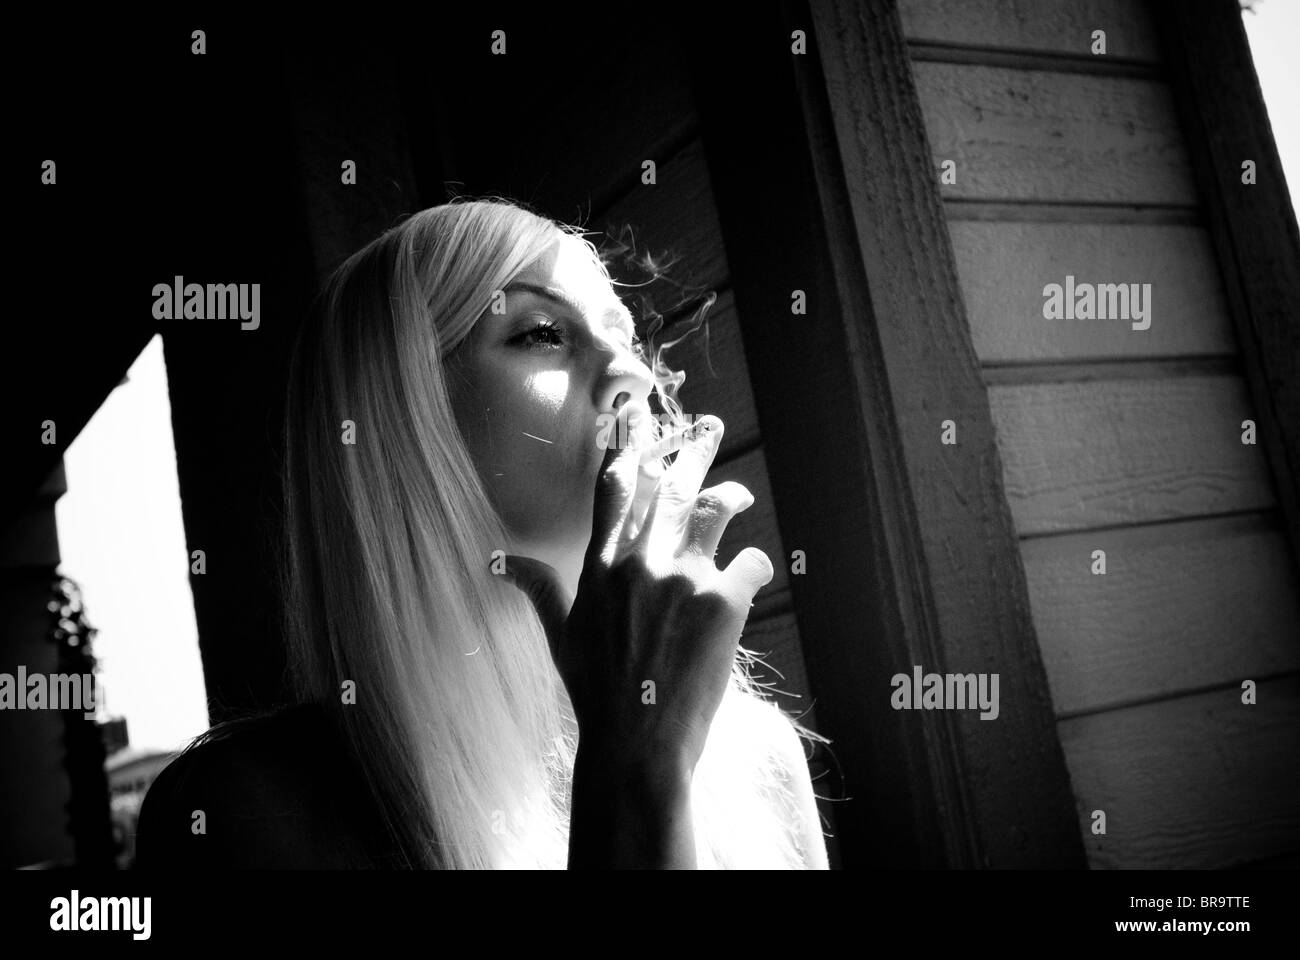 A woman smokes a cigarette. - Stock Image